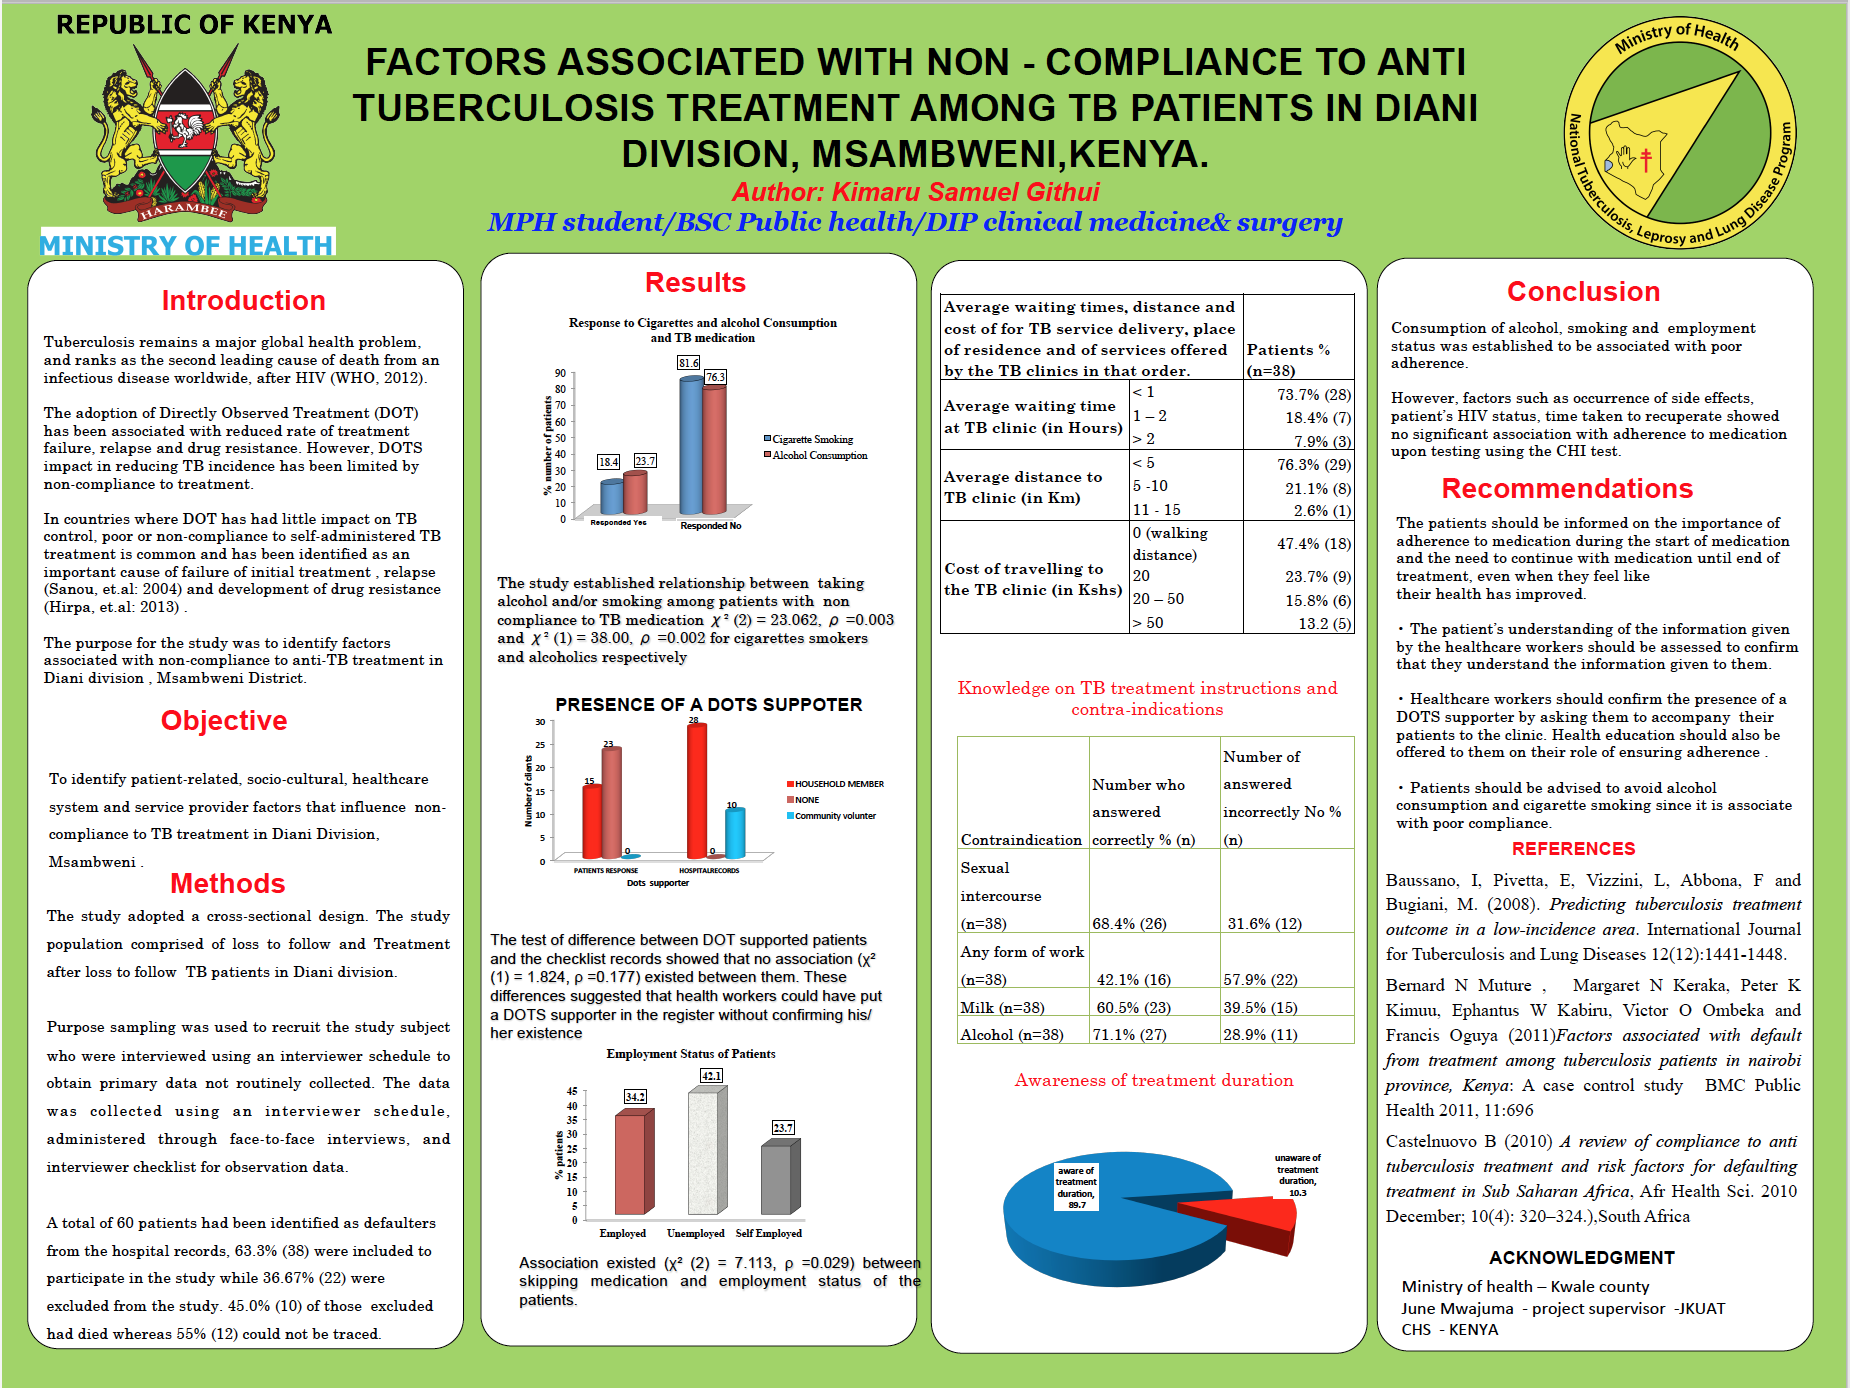 Factors Associated with Non-compliance to Anti-tuberculosis Treatment among TB Patients in Diani Division, Msambweni